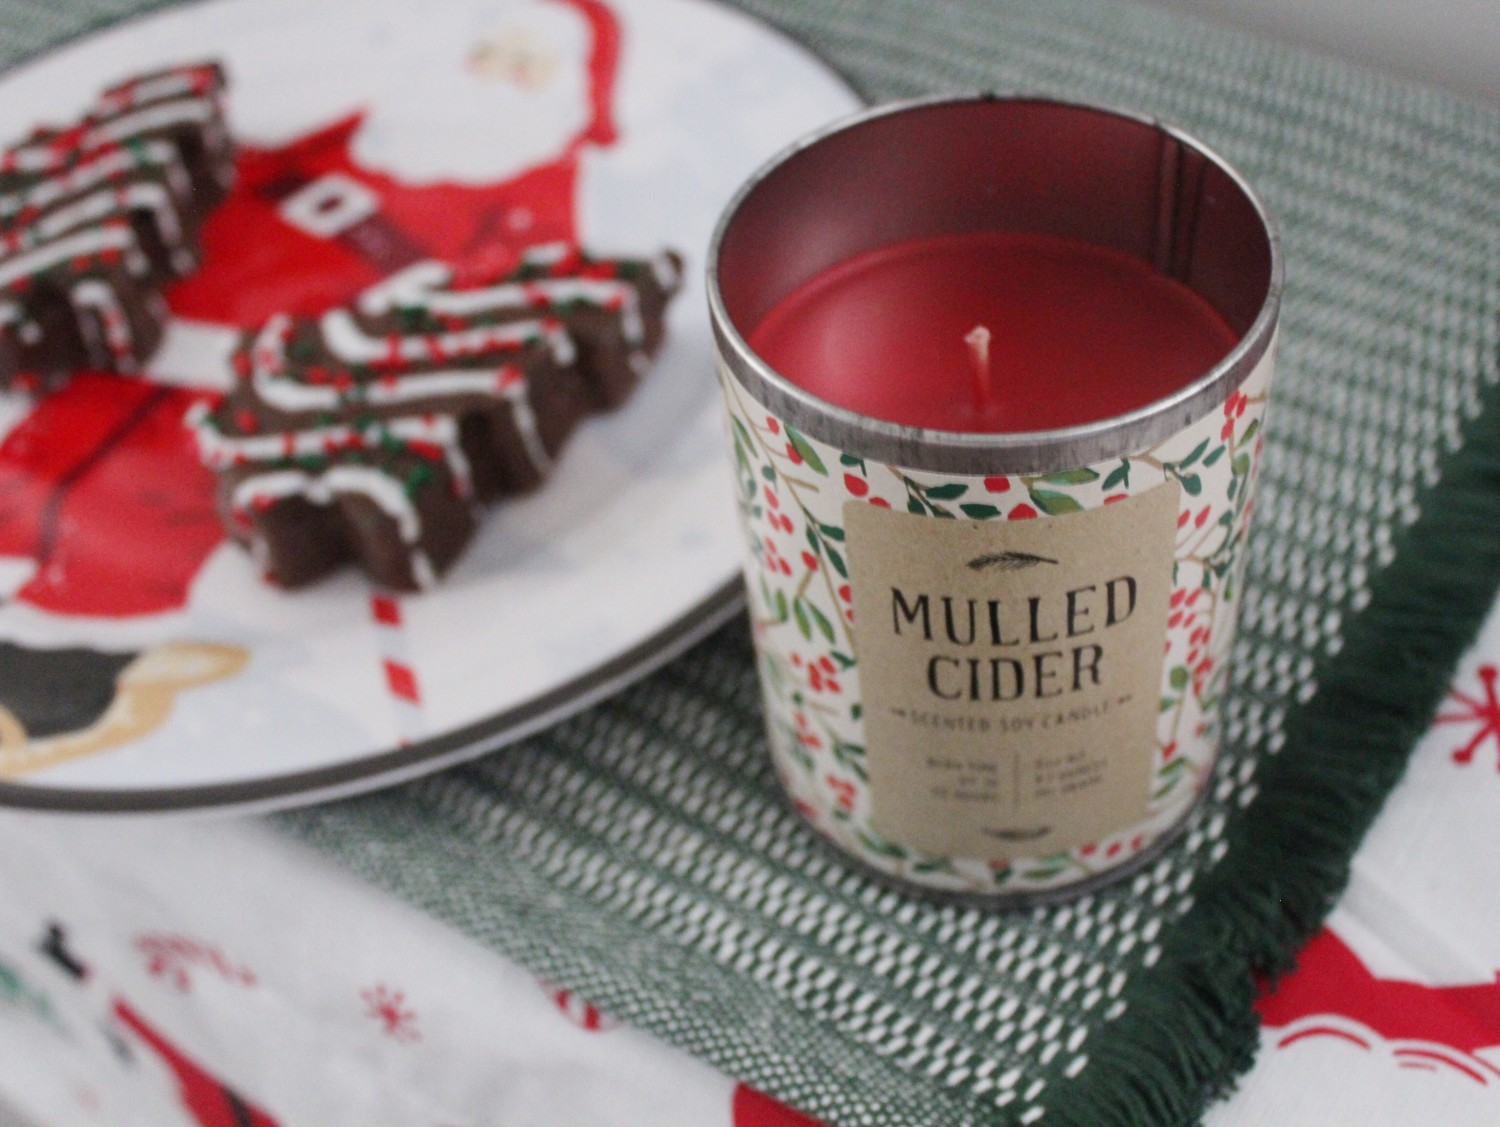 Mulled Cider Candle From Target